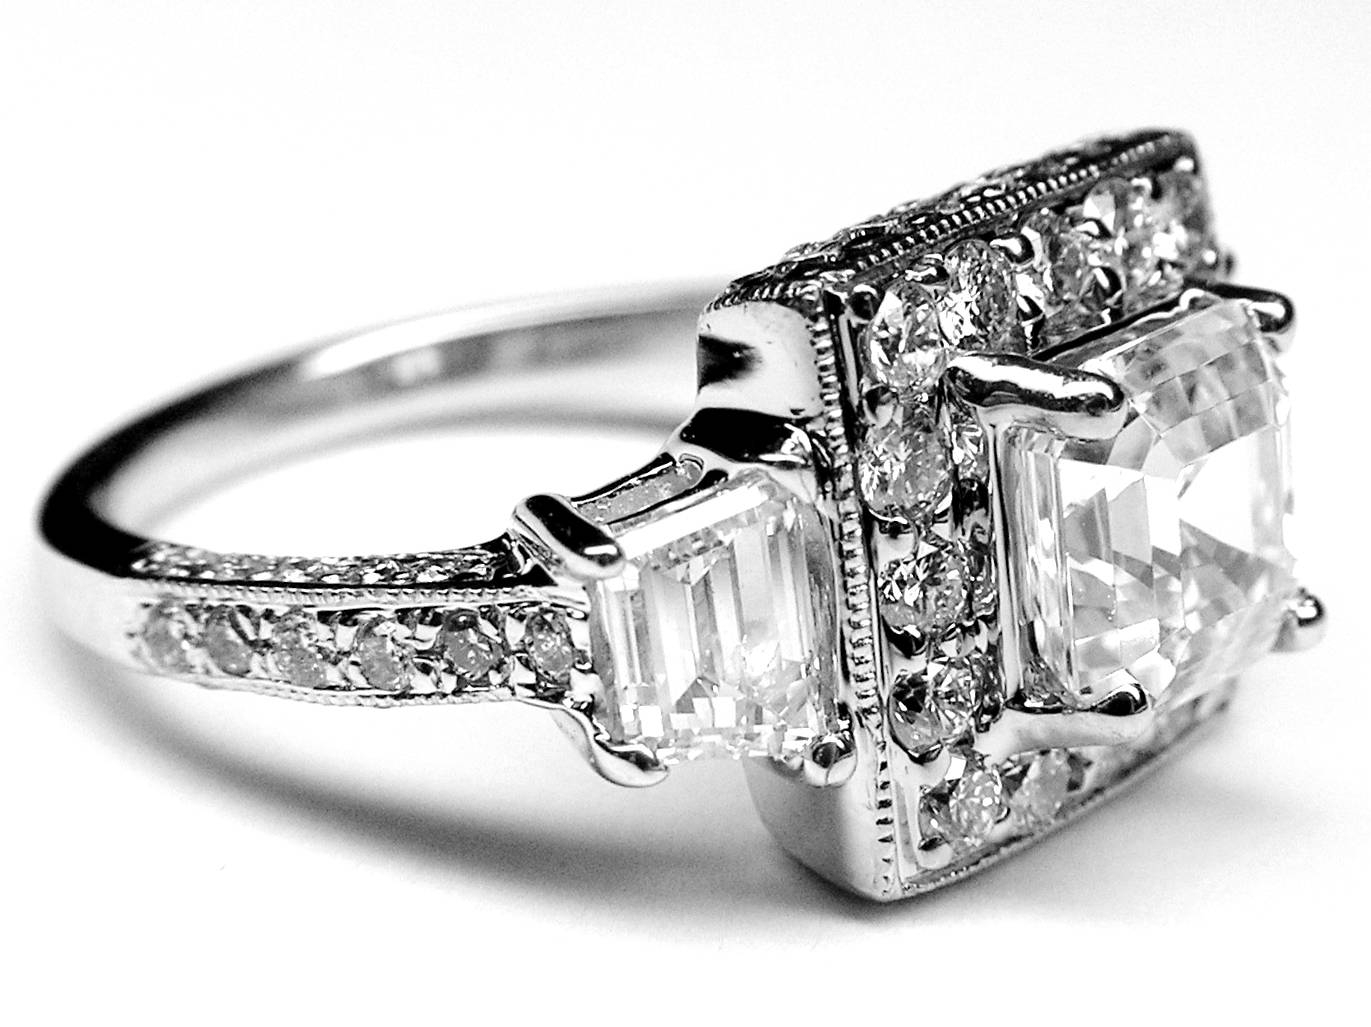 Engagement Ring  Asscher Cut Diamond Vintage Halo Engagement Ring Throughout Vintage Halo Engagement Ring Settings (View 6 of 15)